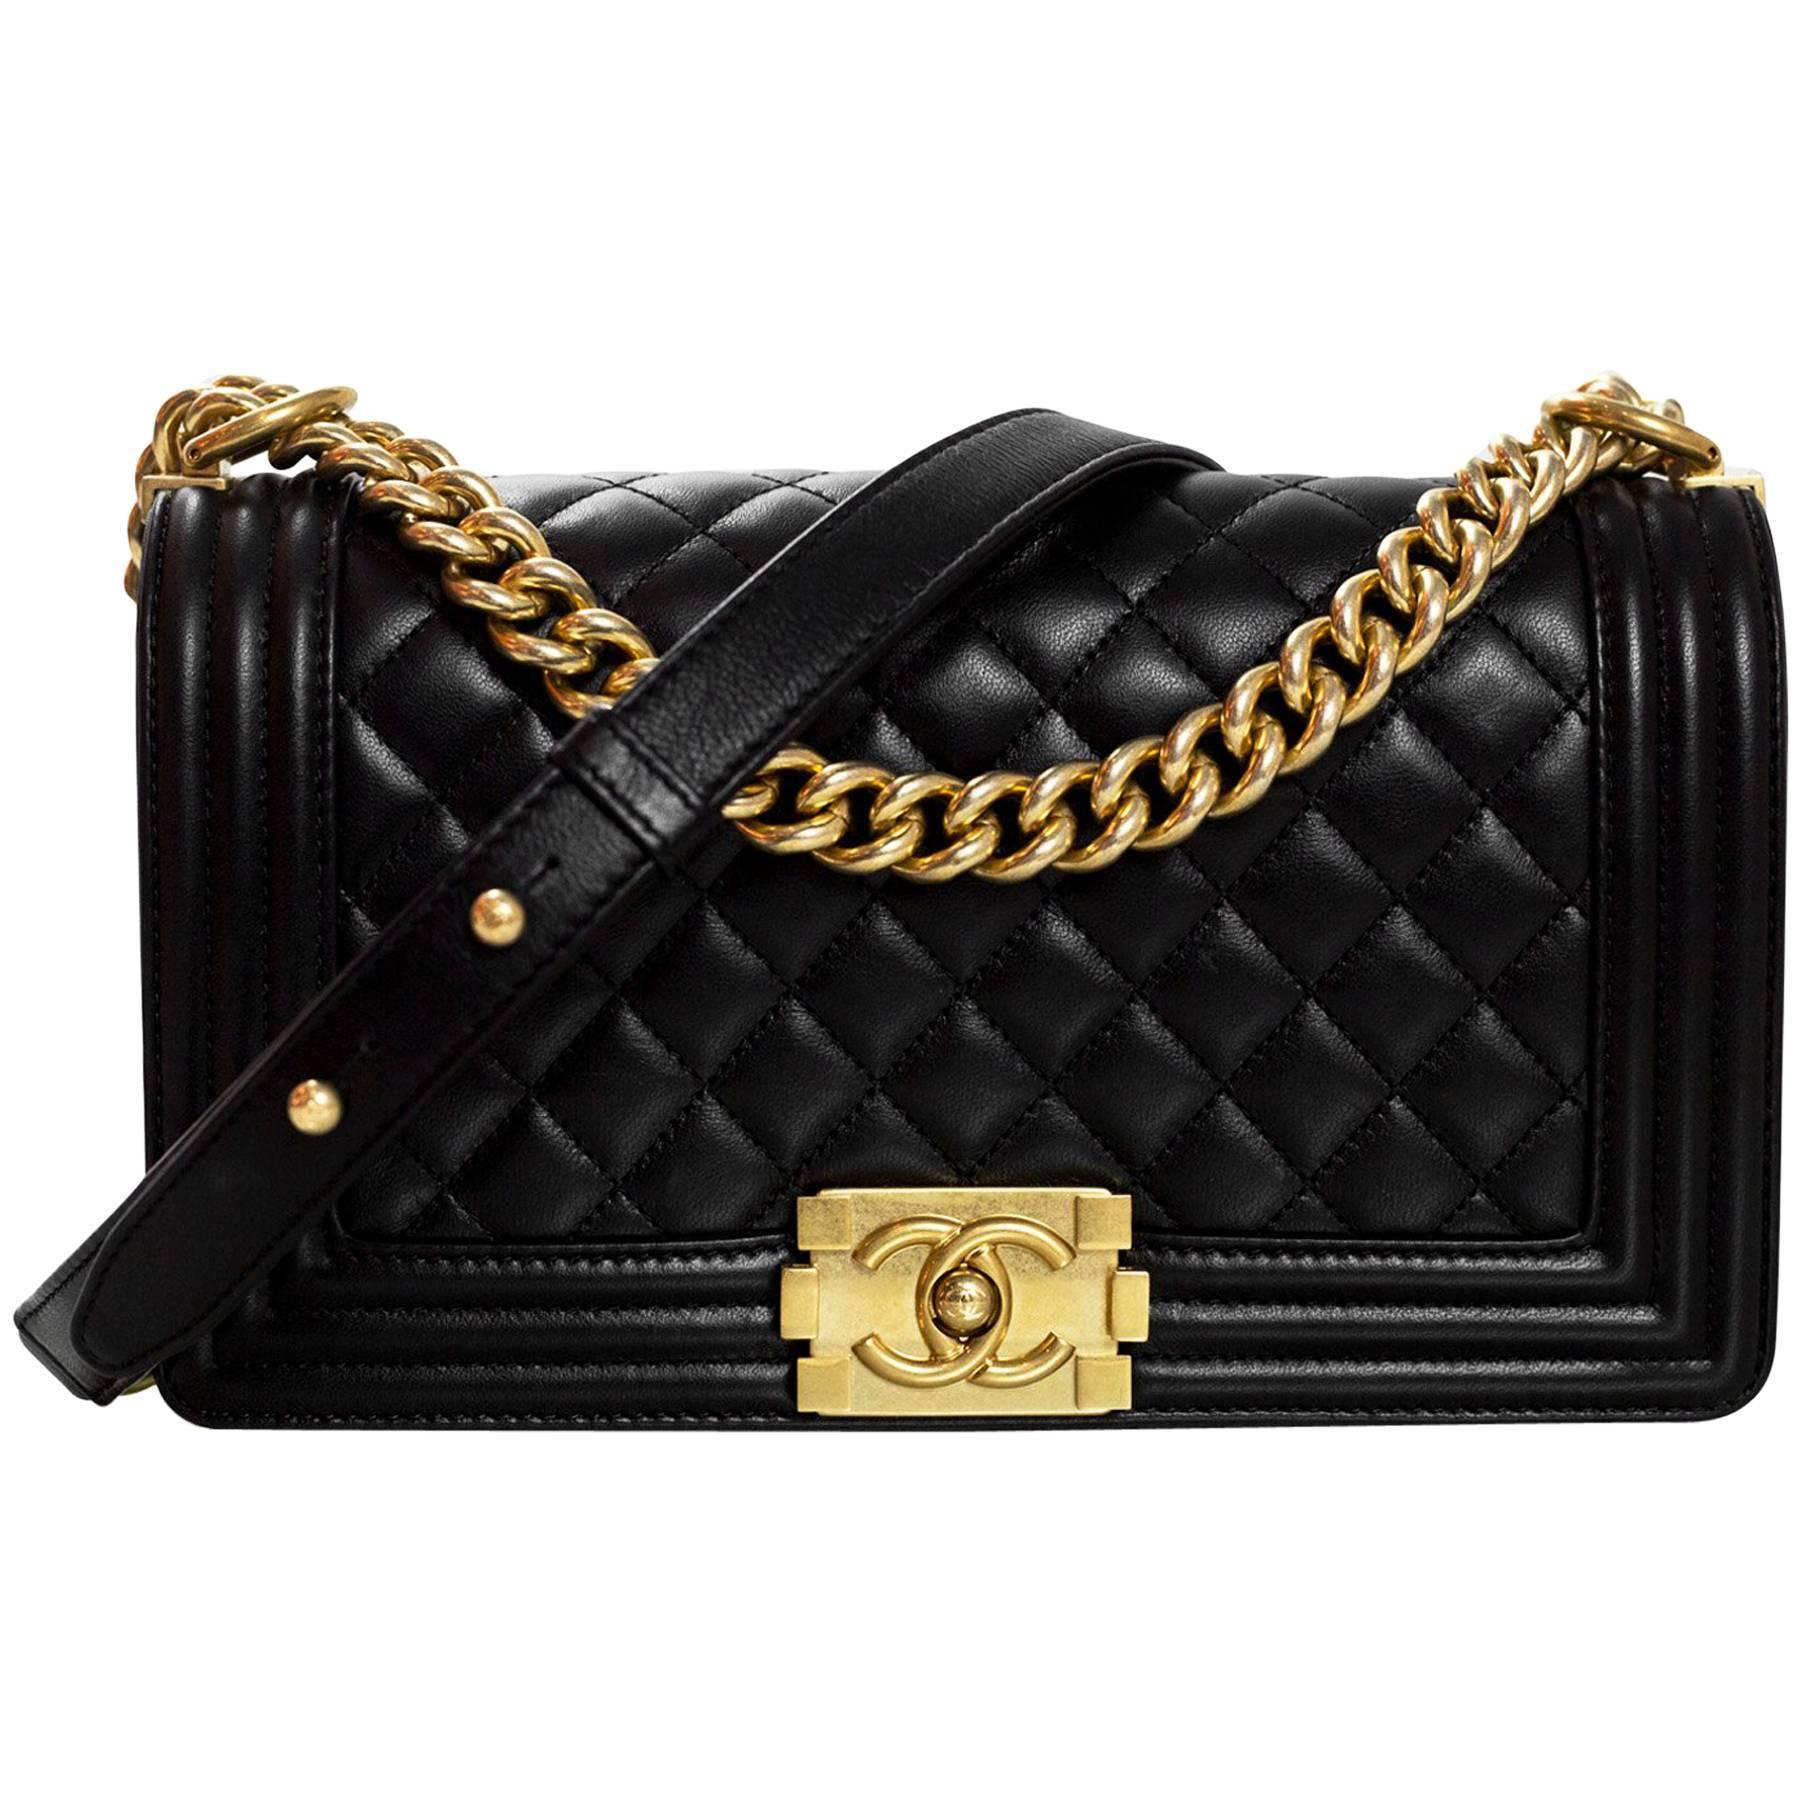 Chanel Black Quilted Lambskin Old Medium Boy Bag with Box For Sale at  1stdibs 6e4d41507d